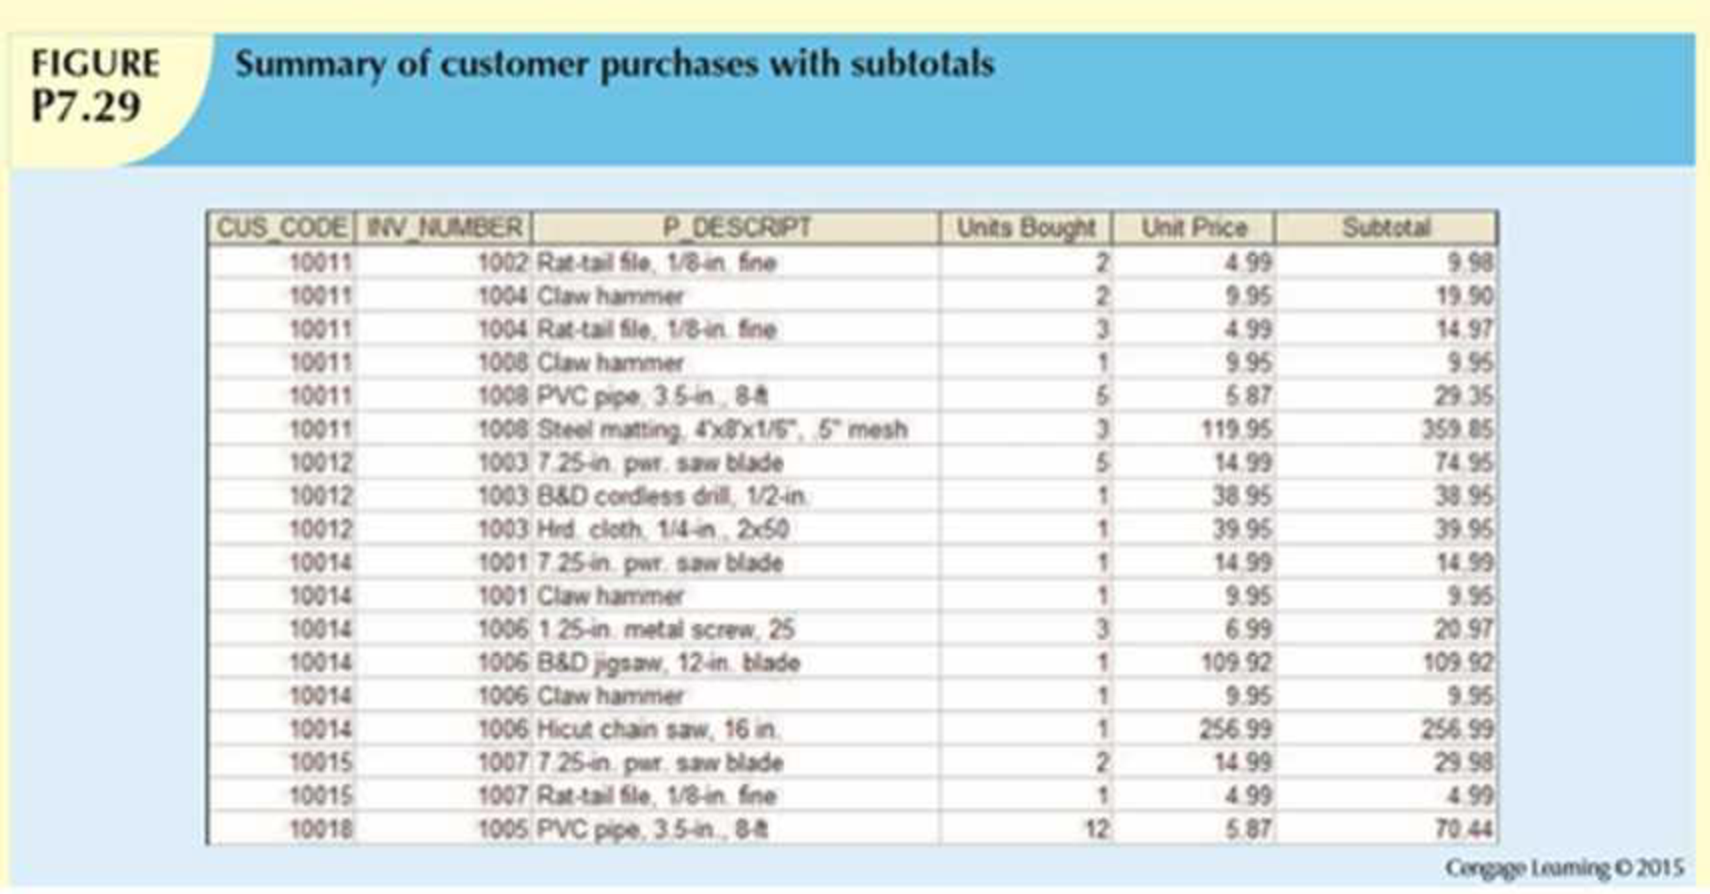 Chapter 7, Problem 29P, Using the output shown in Figure P7.29 as your guide, generate a list of customer purchases,